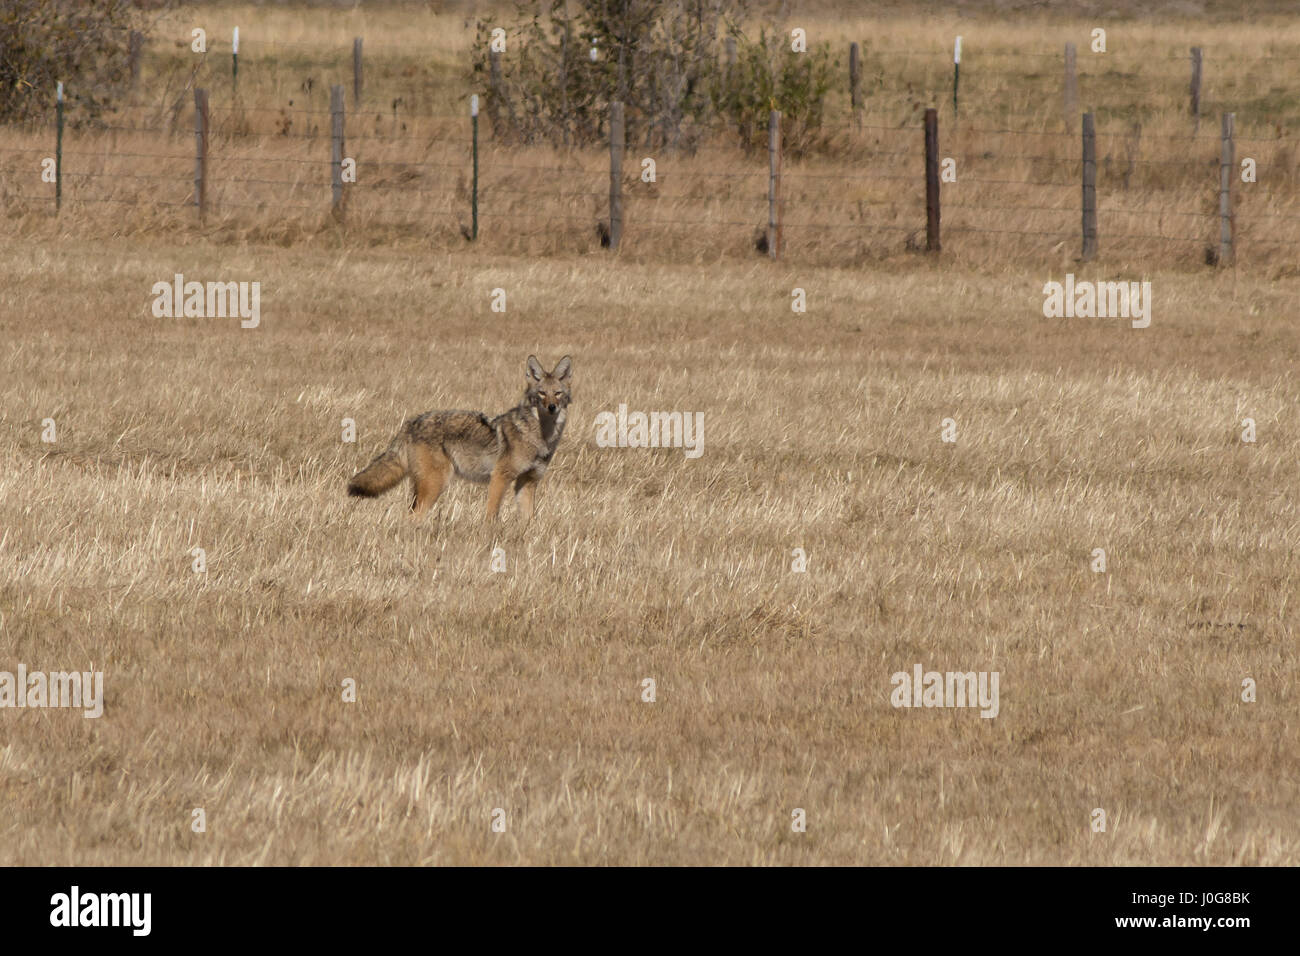 A coyote hunts in a dry, autumn field - Stock Image